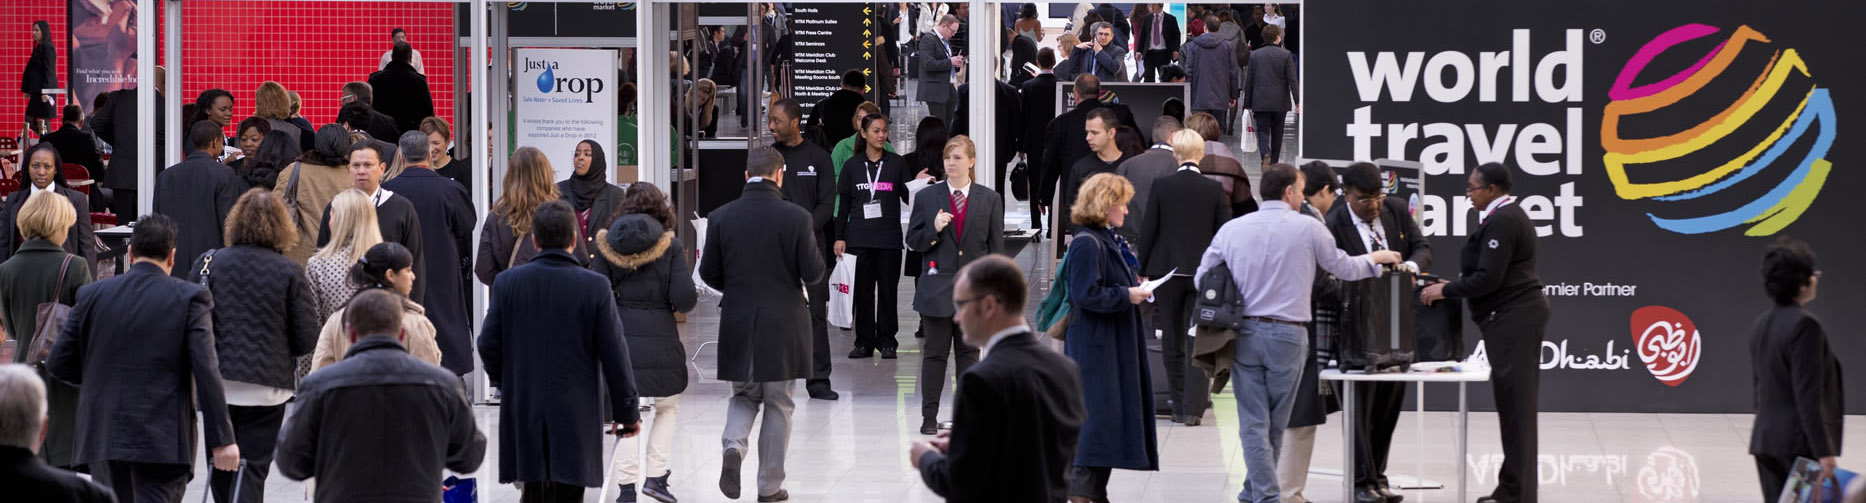 AV and LED Screens Hire for World Travel Market at ExCeL, London